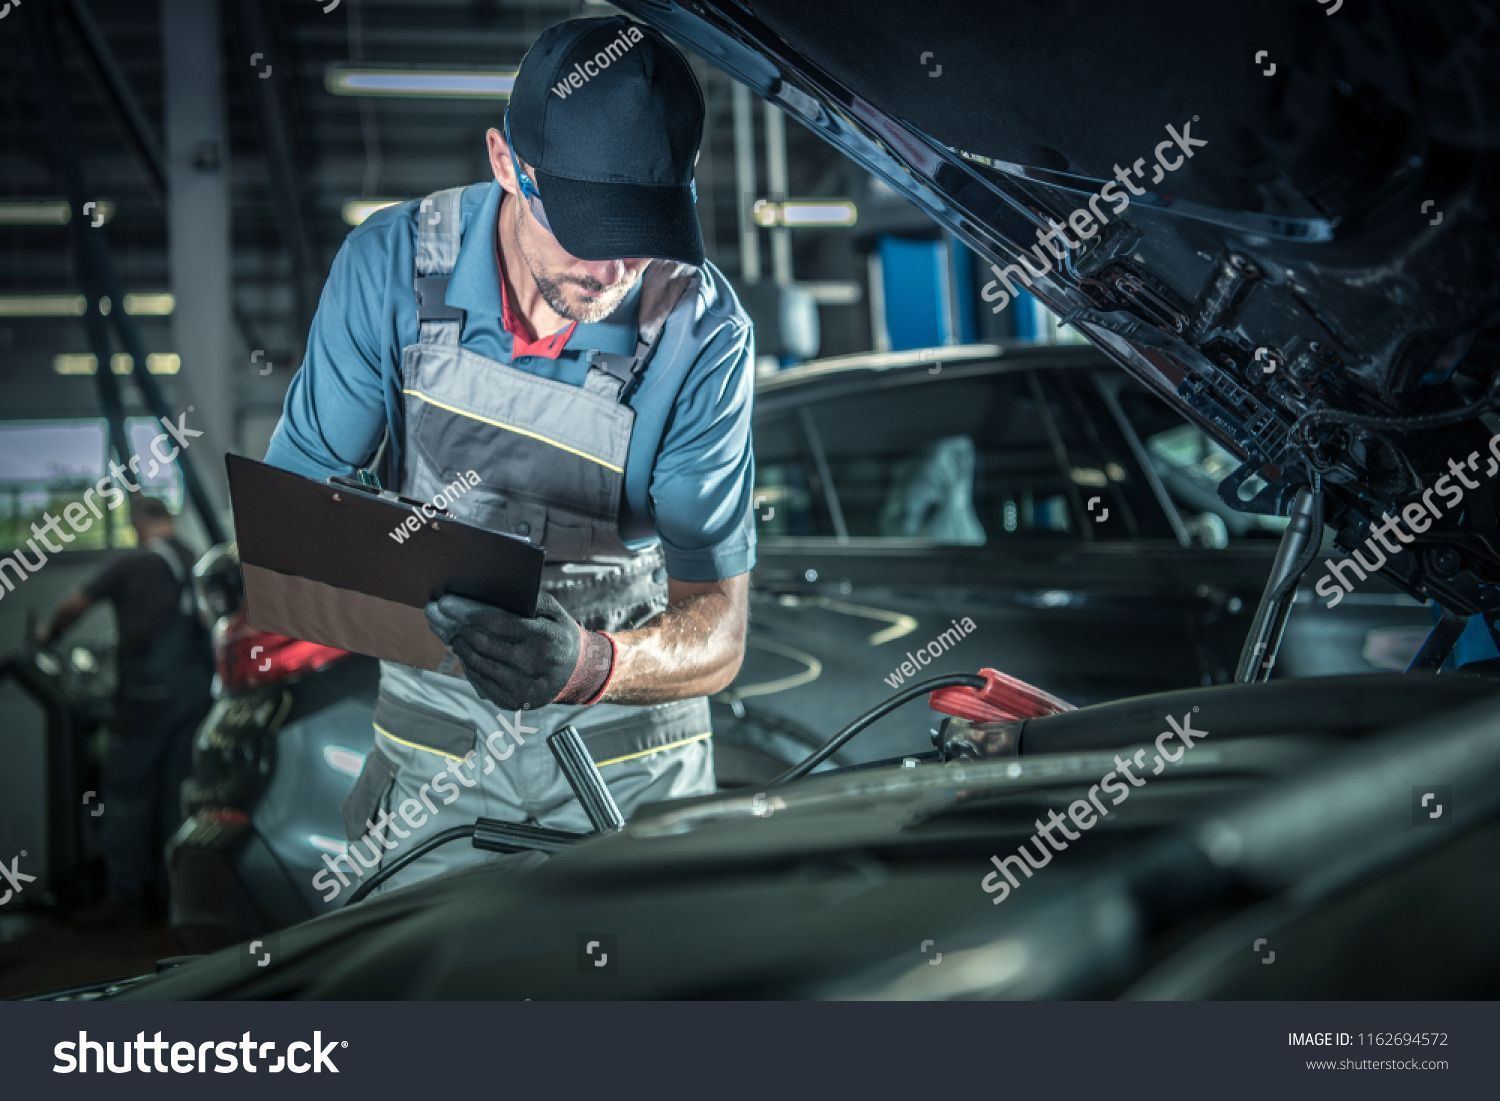 Car Mechanic Detailed Vehicle Inspection Auto Service Center Theme Sponsored Auto Car Center In 2020 Vehicle Inspection Auto Service Center Car Mechanic